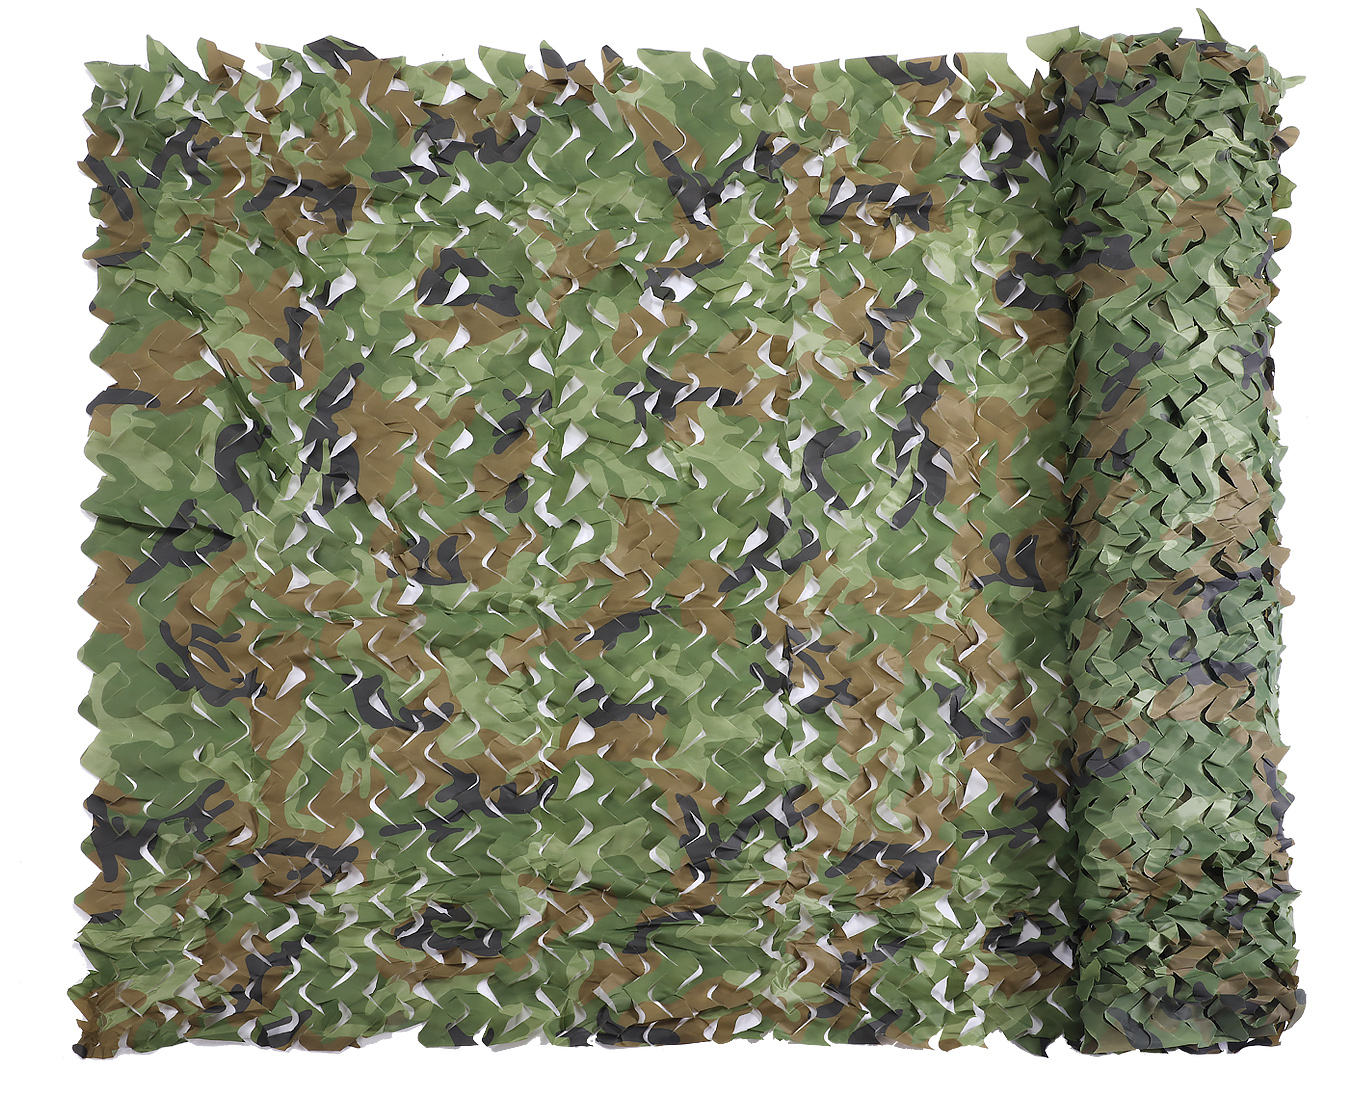 3D Woodland Fabric Pine Needles Multi Spectral Shadow Thermal Hunting Camo Netting Multispectral Anti-radar Army Camouflage DIY